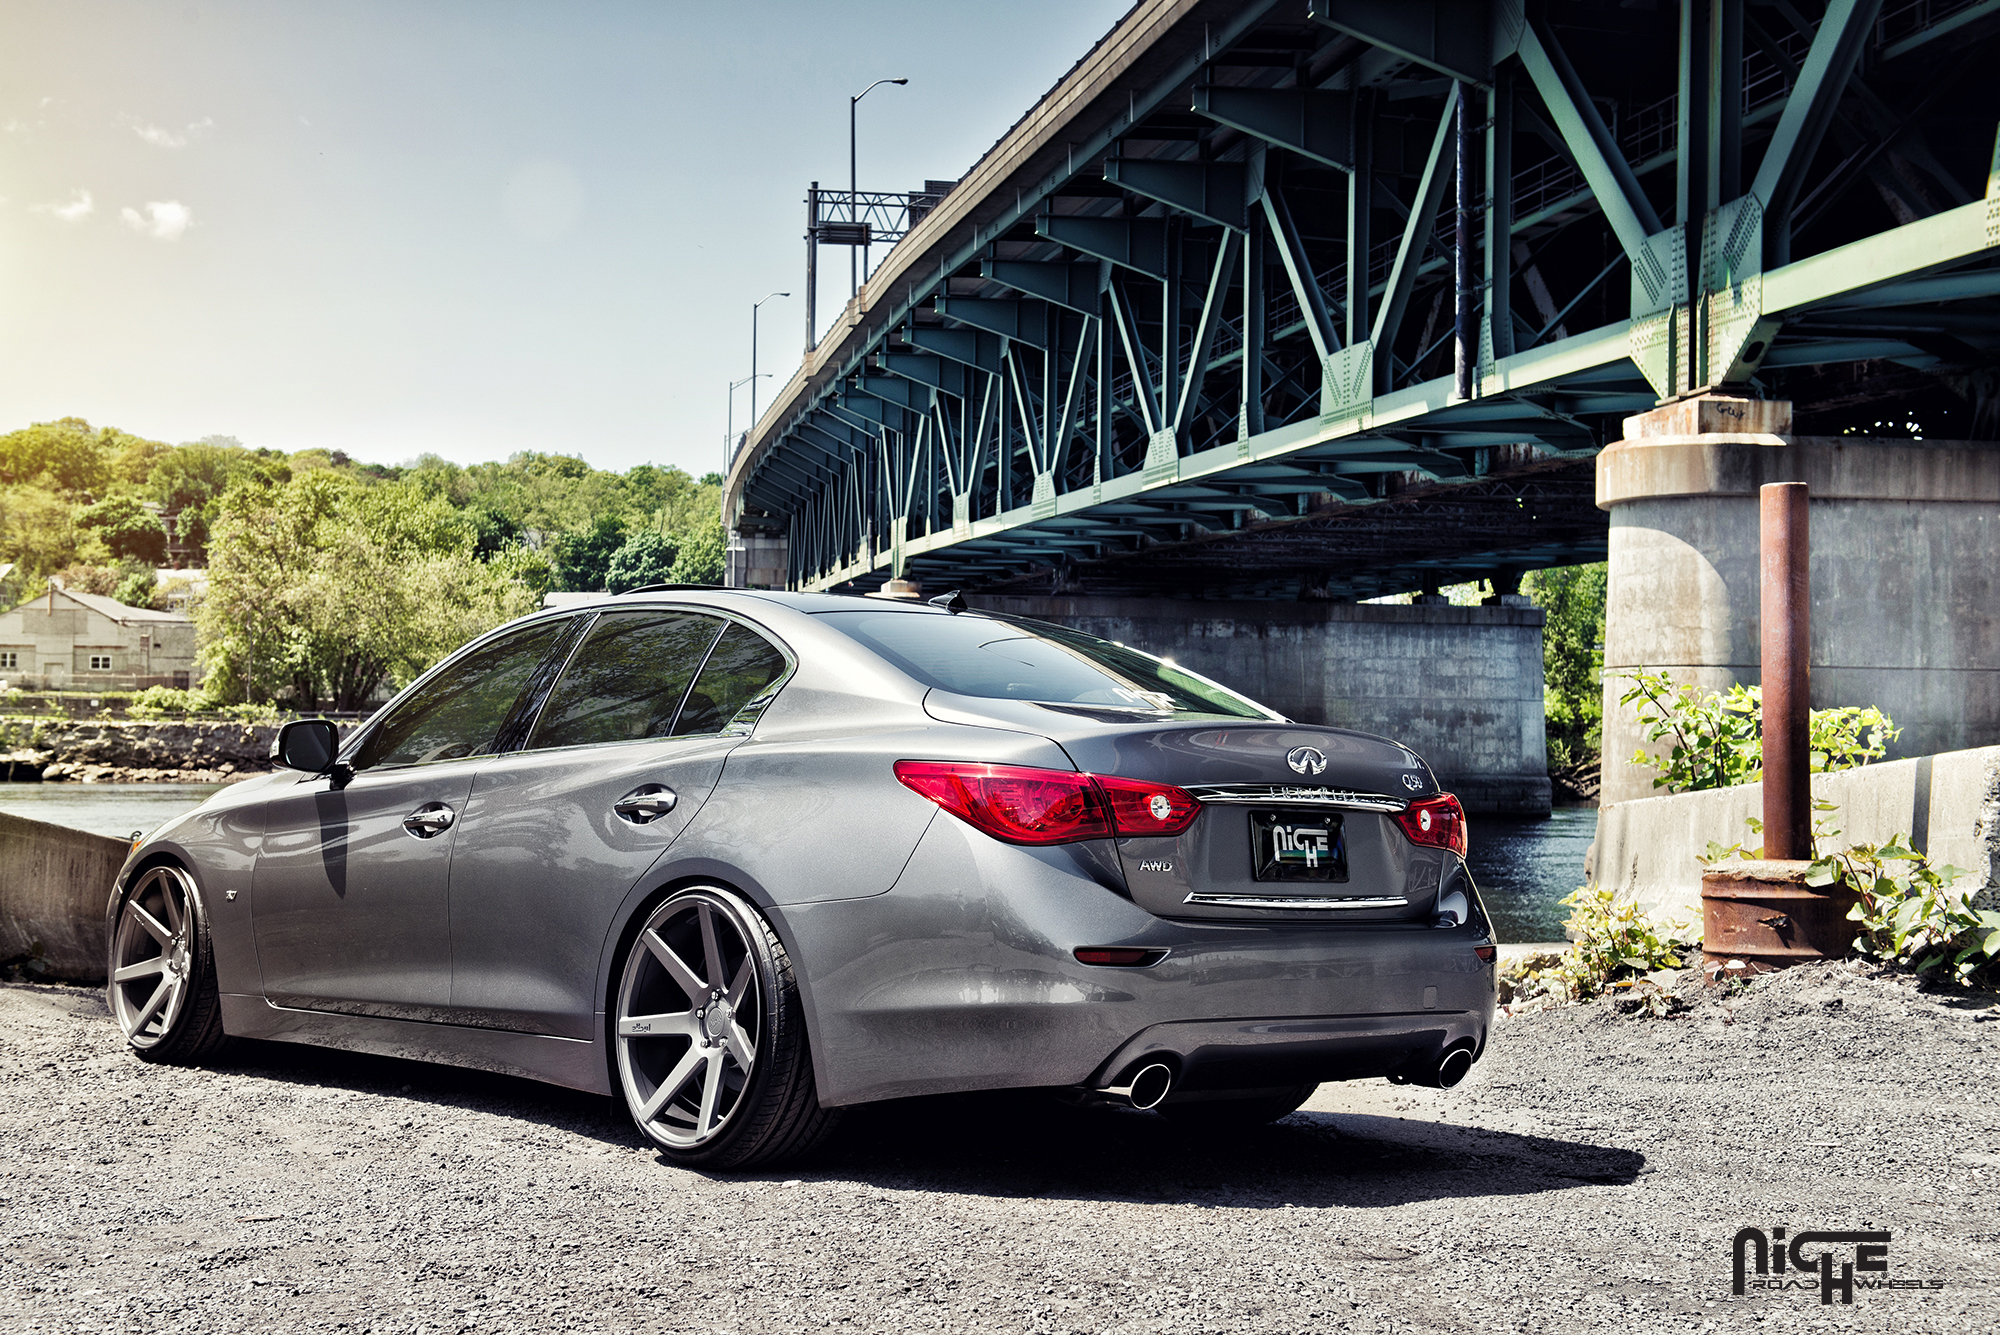 Infiniti Q50 Verona M149 Gallery Mht Wheels Inc